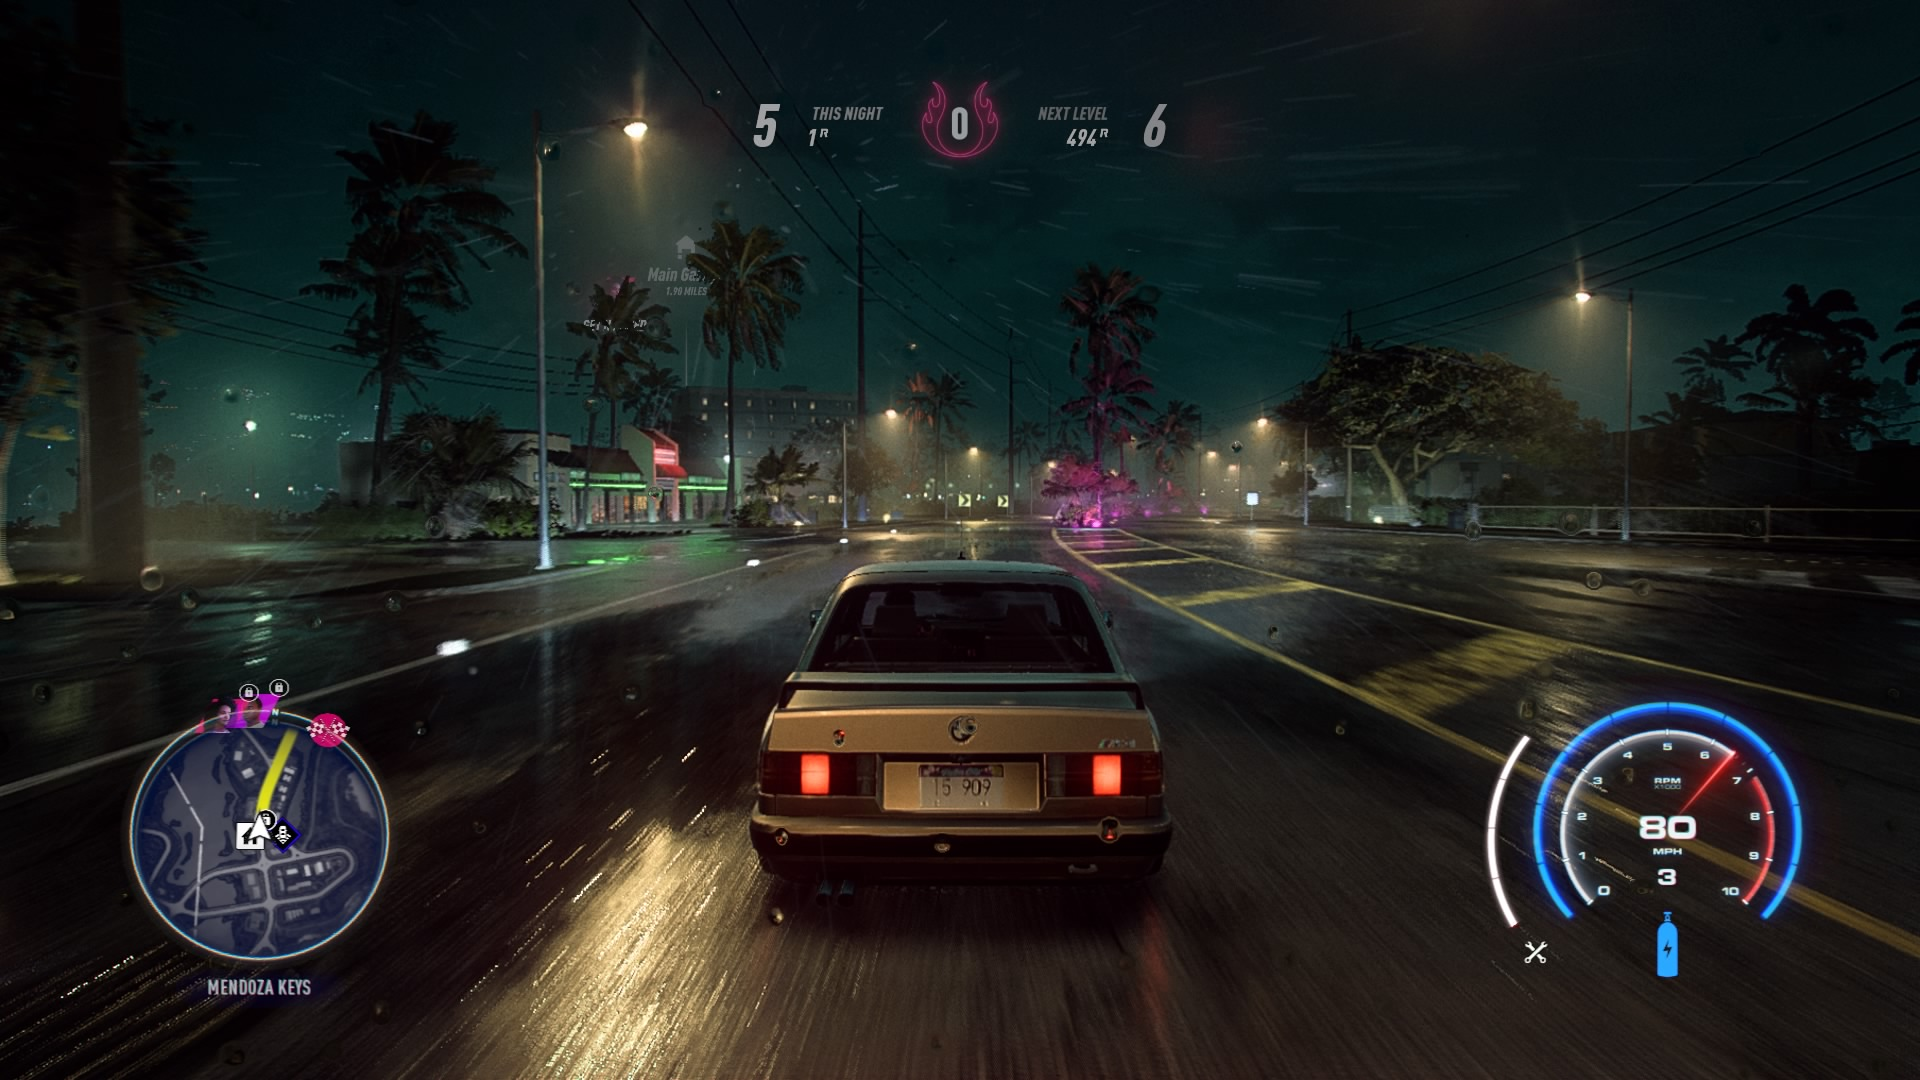 Is Need for Speed Heat cross platform?